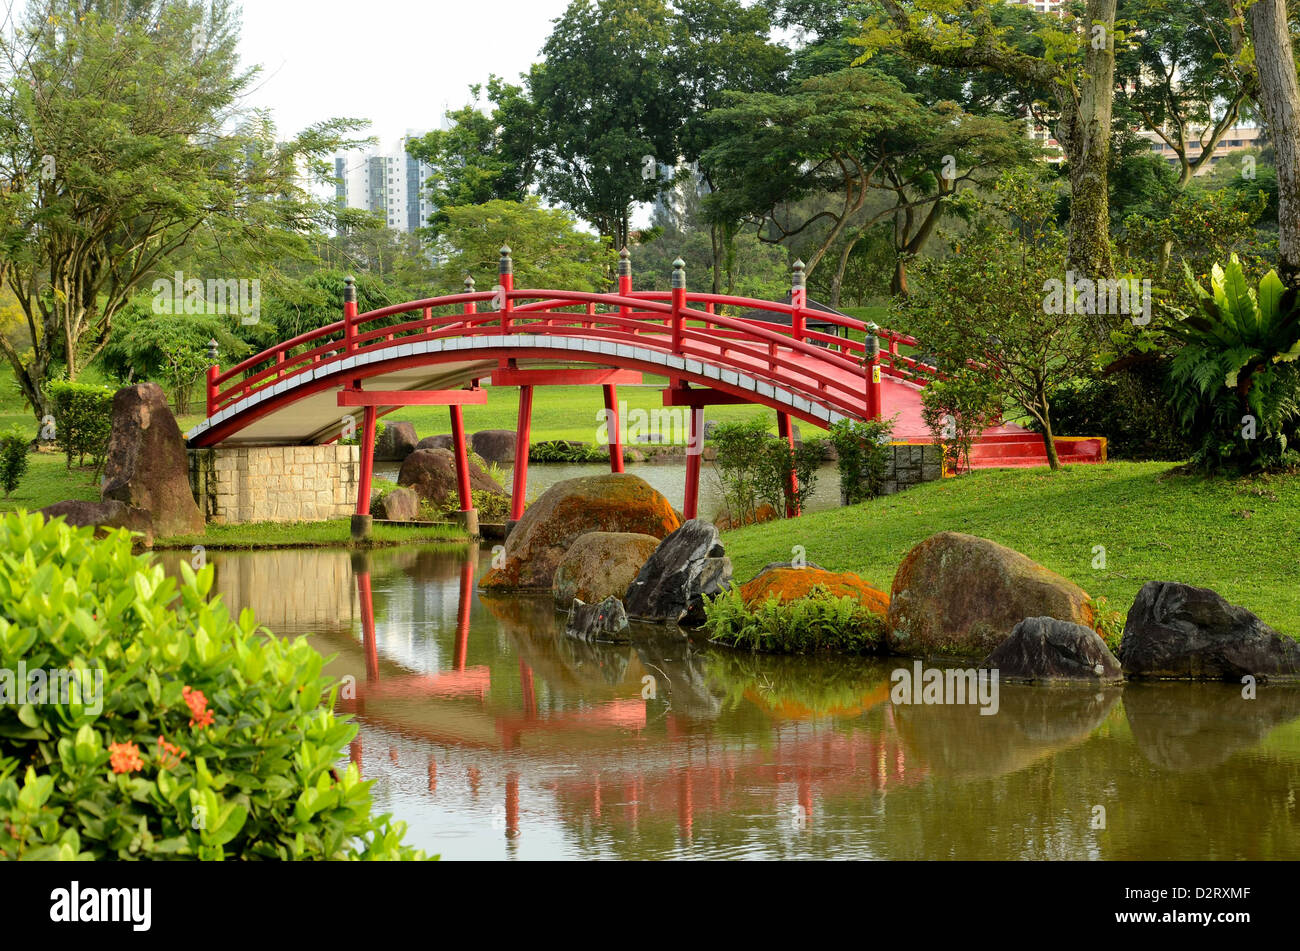 picturesque curved red japanese style bridge over stream